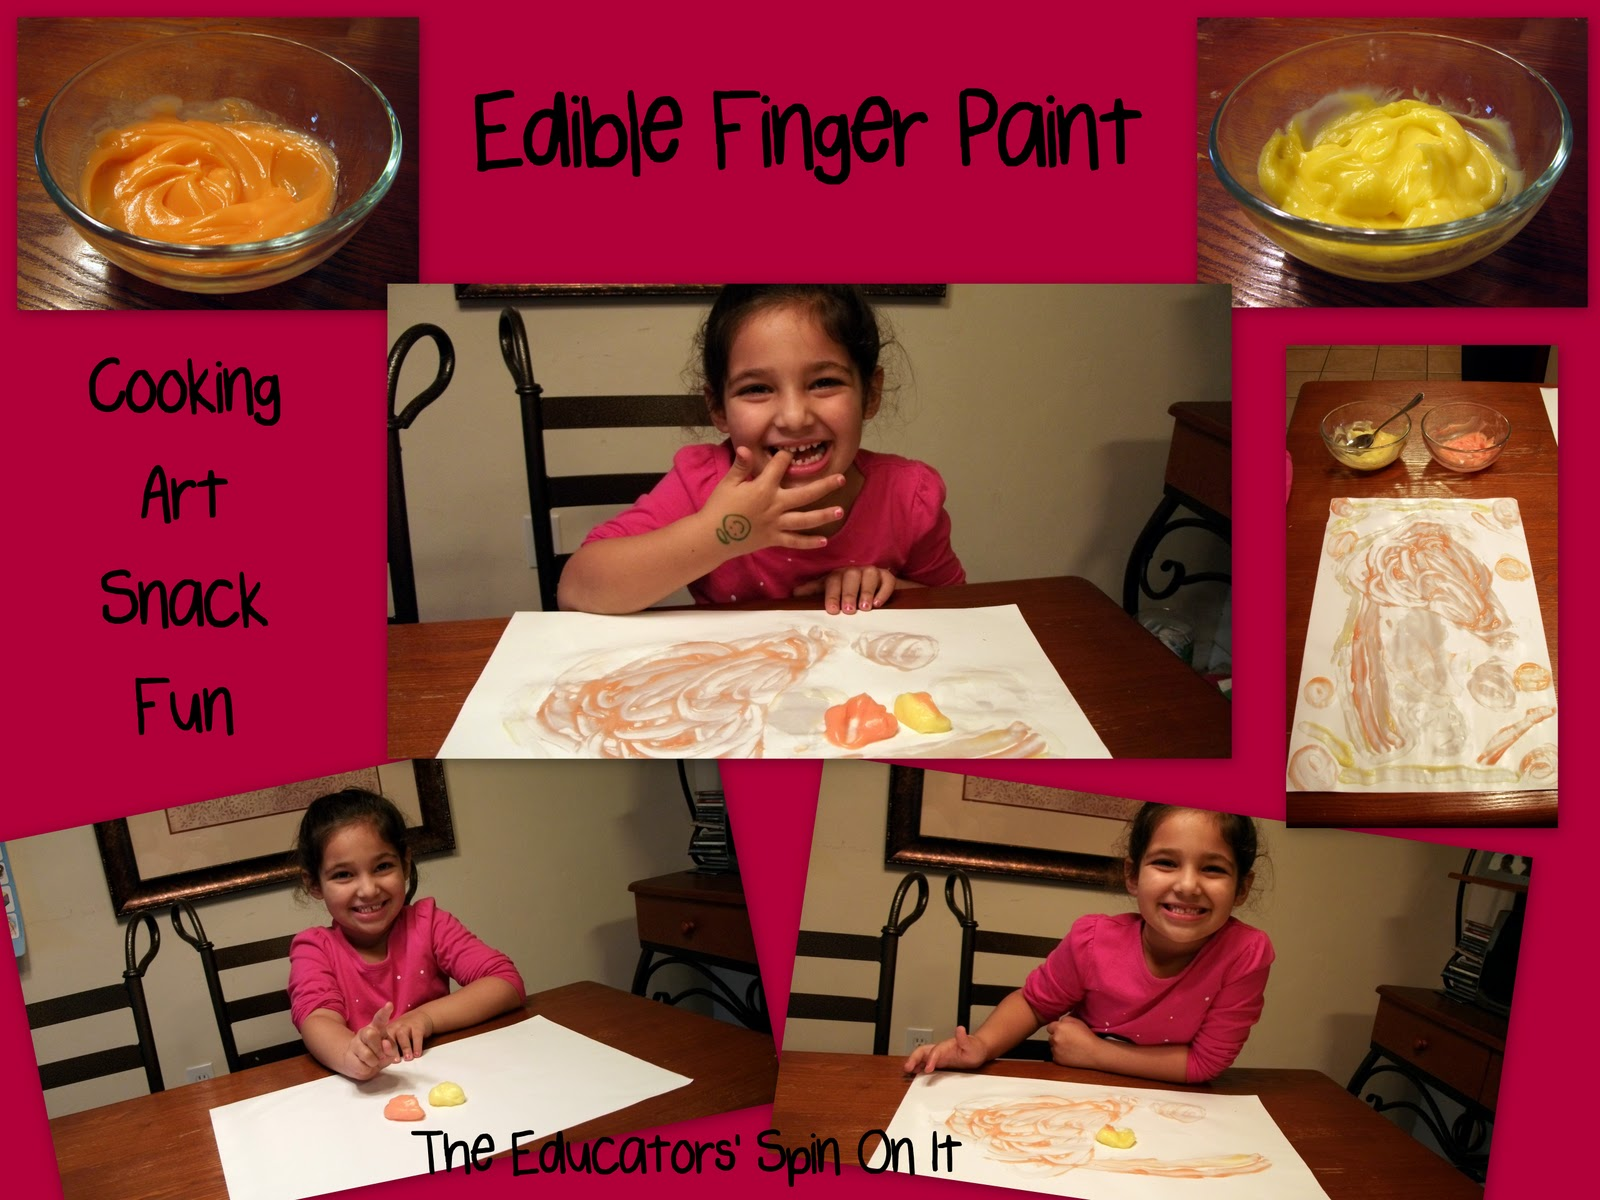 Heres What Our Afternoon Of Finger Painting Fun Looked Like With My Two Girls